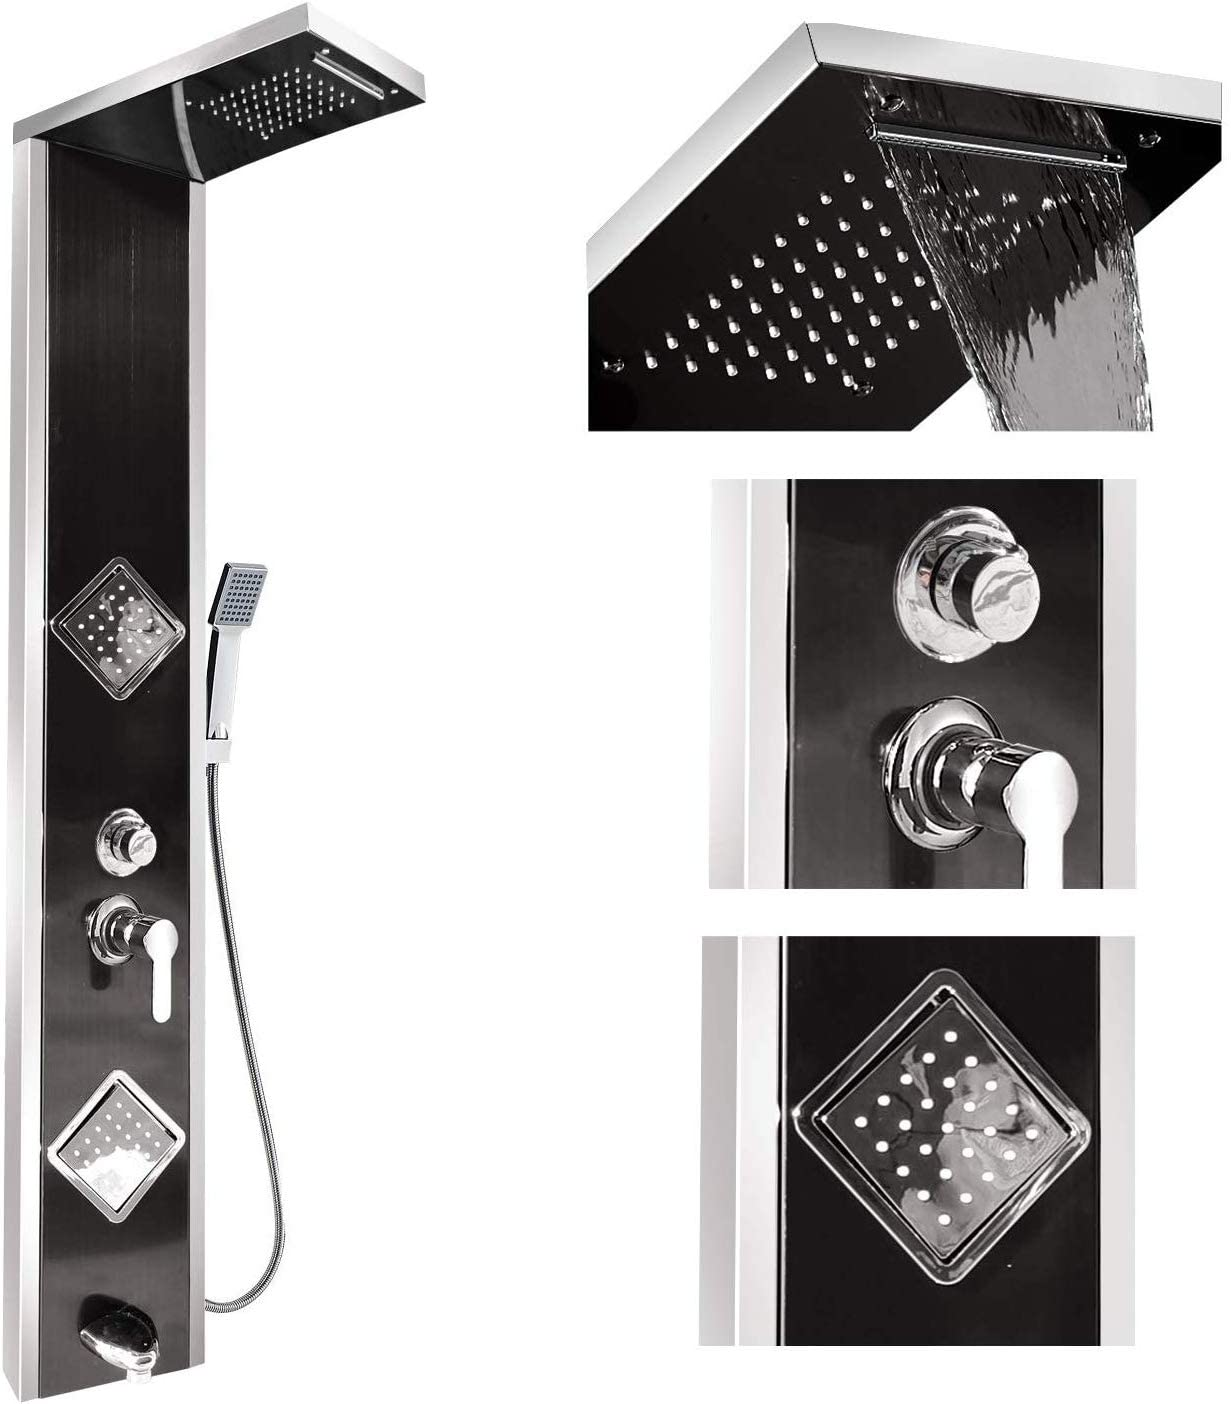 Black Stainless Steel Shower Panel Tower Rain/&Waterfall Massage Body System Jets